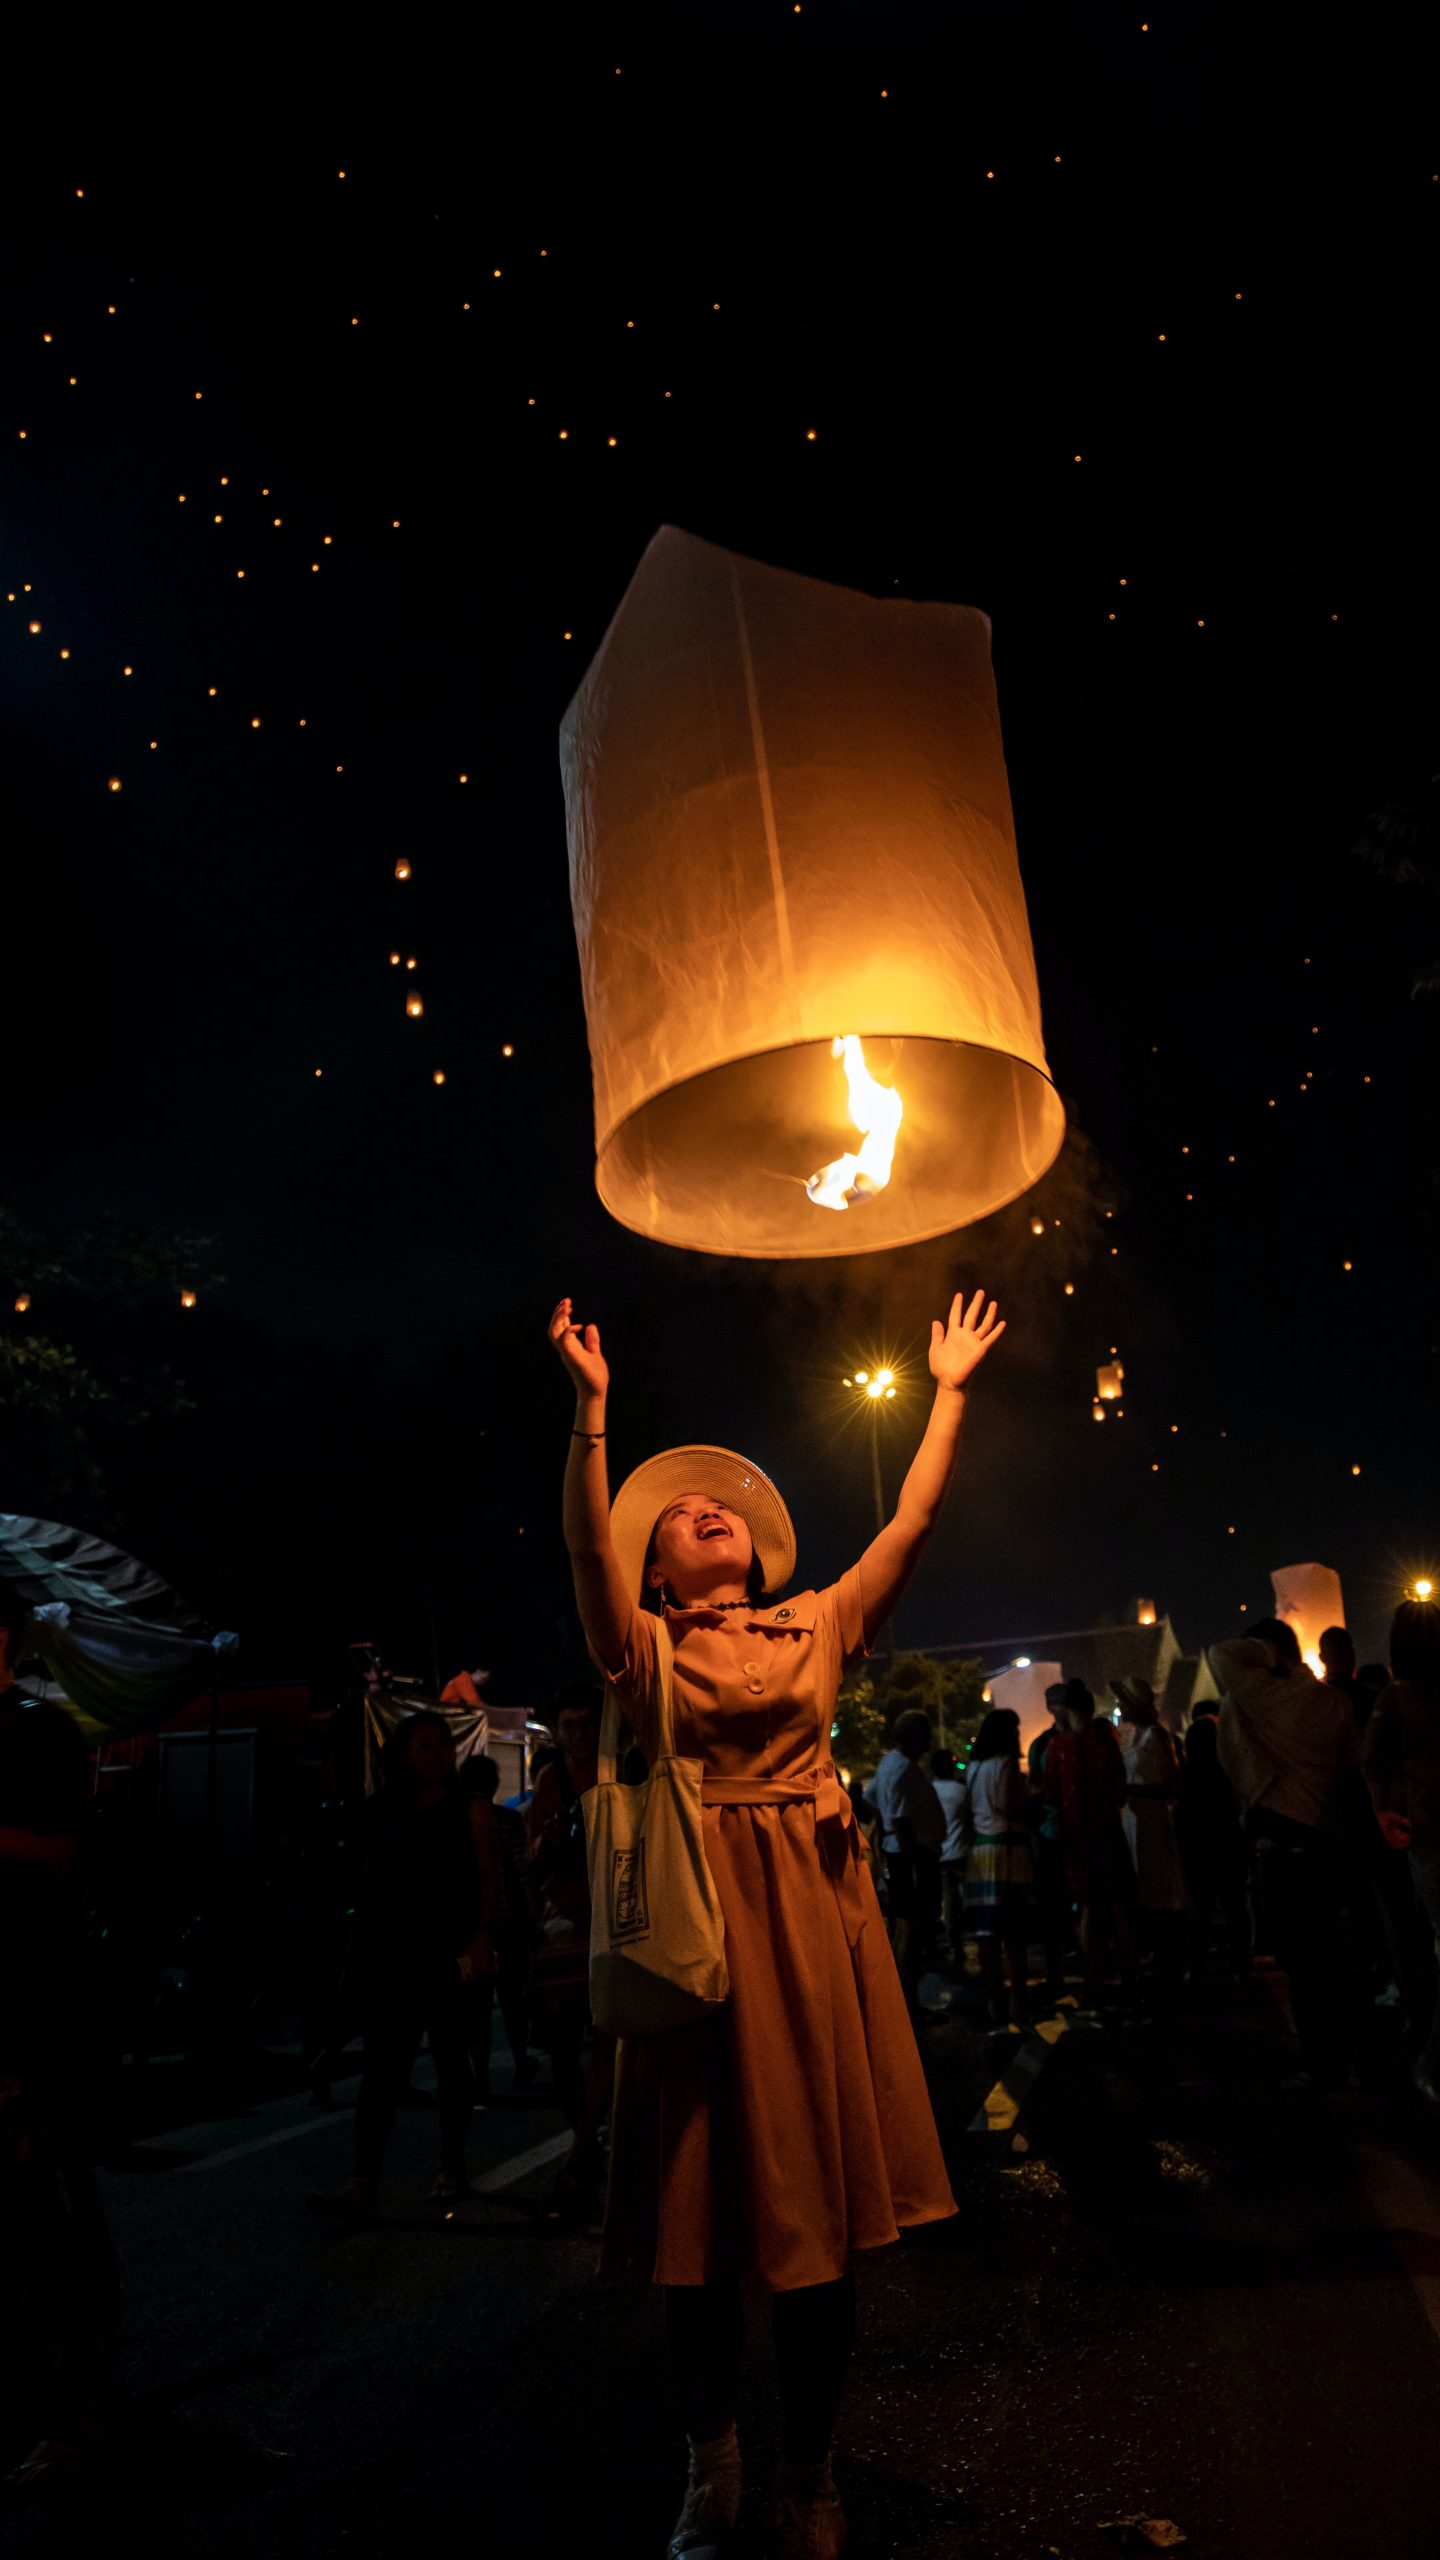 woman in brown dress holds sky lantern